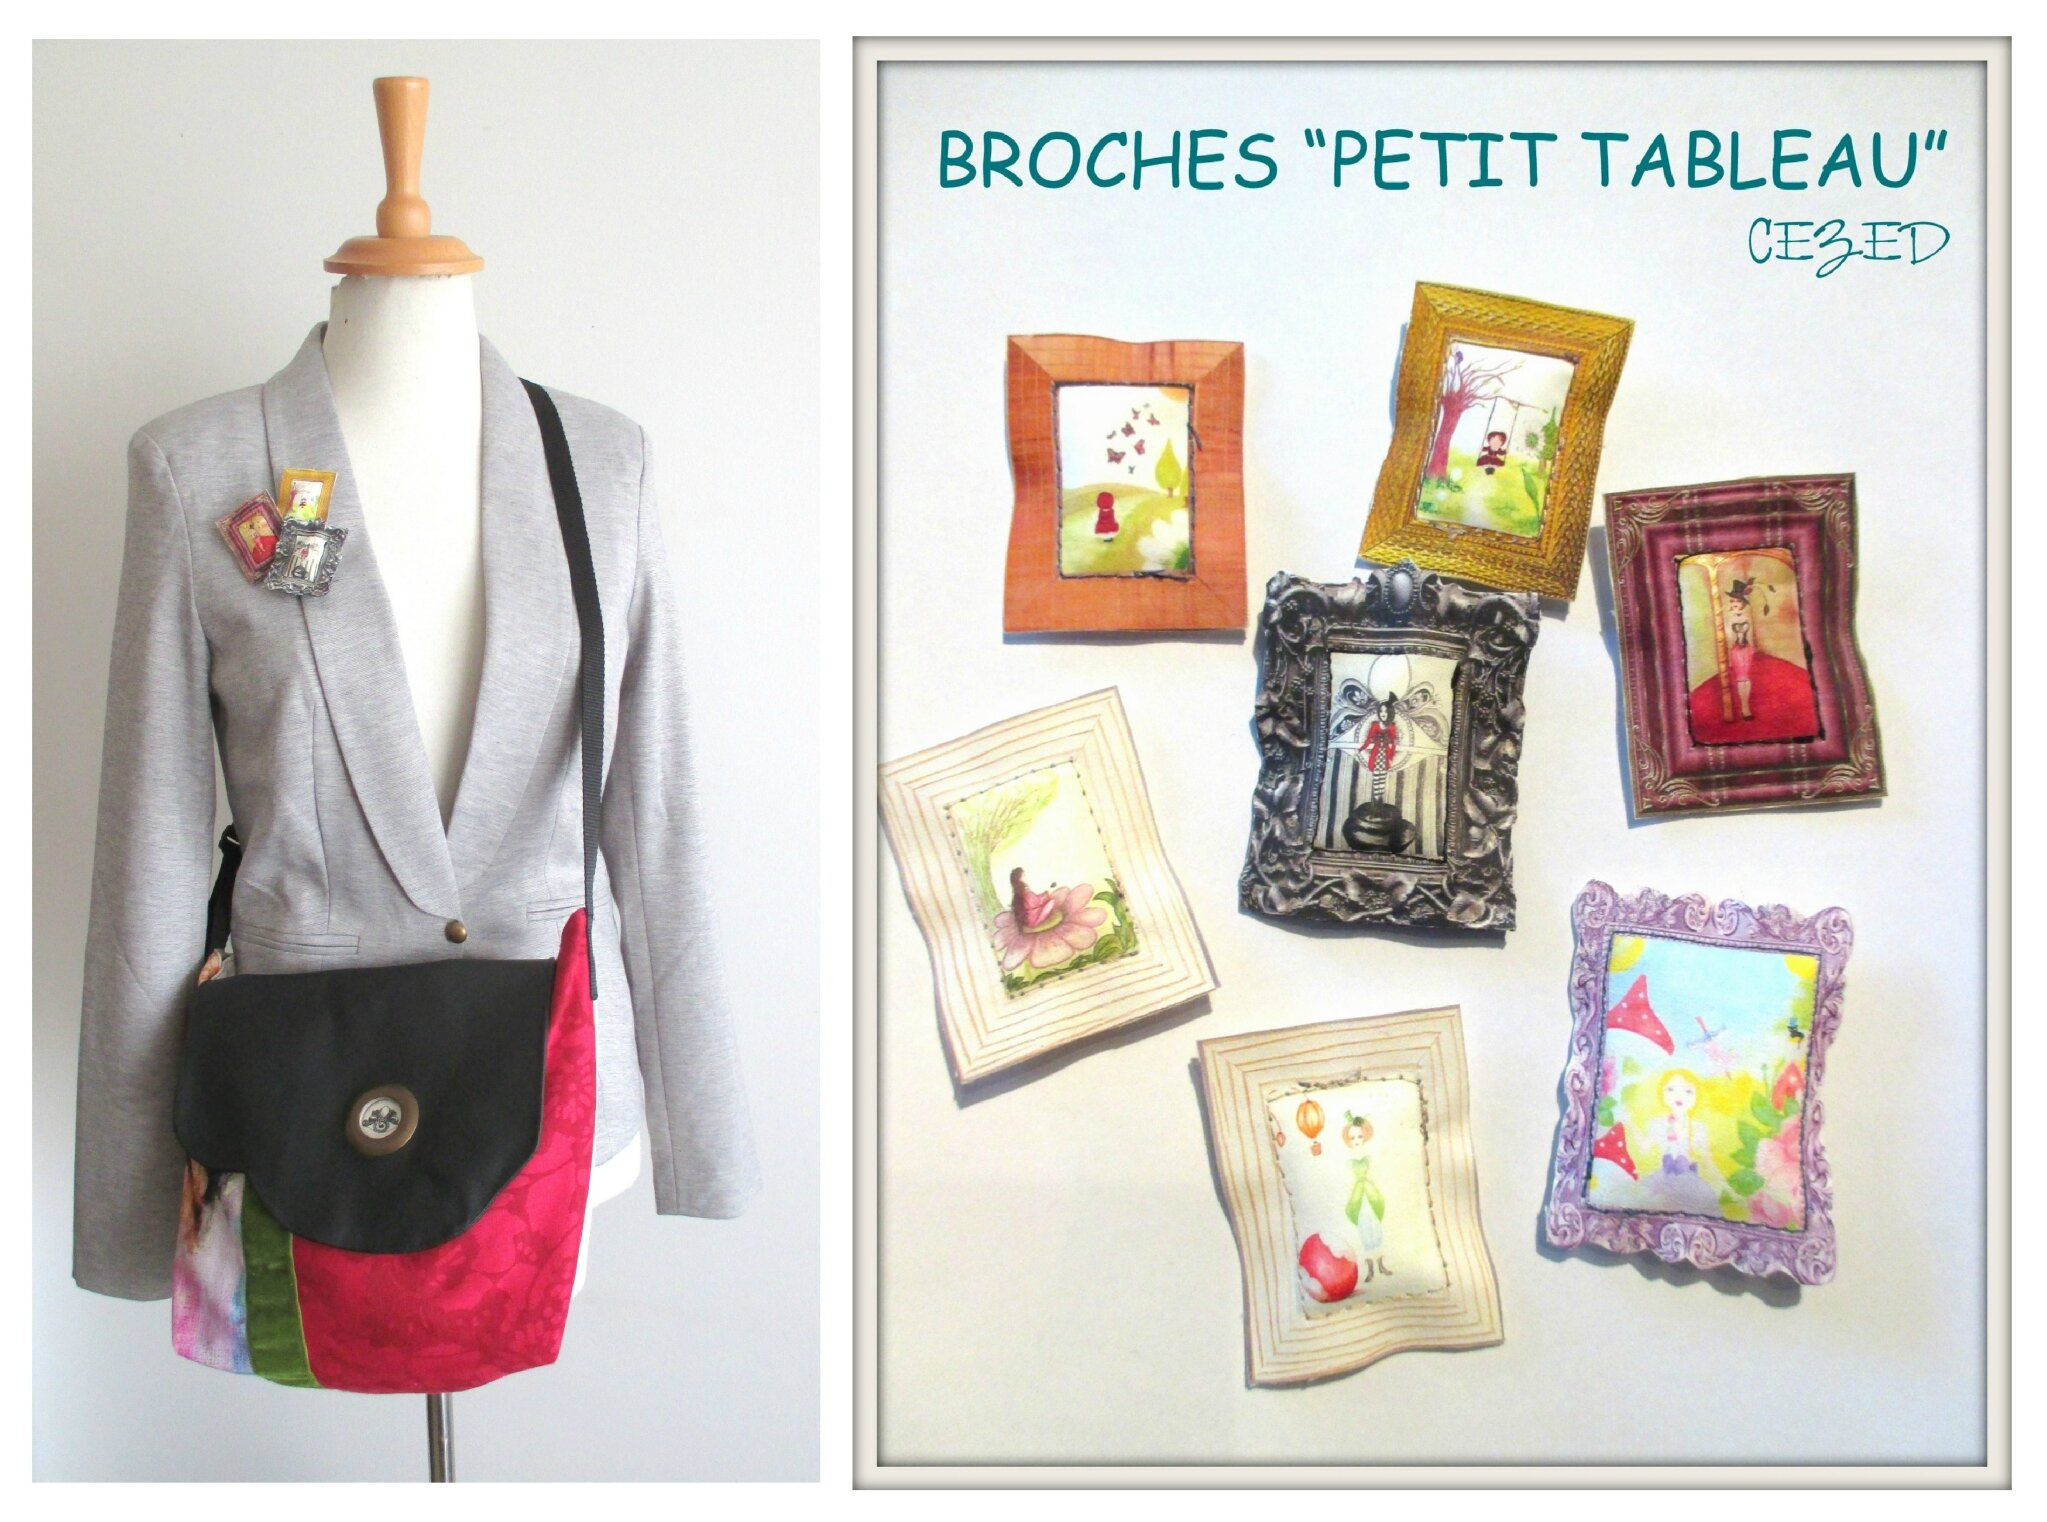 BROCHES PETITS TABLEAUX